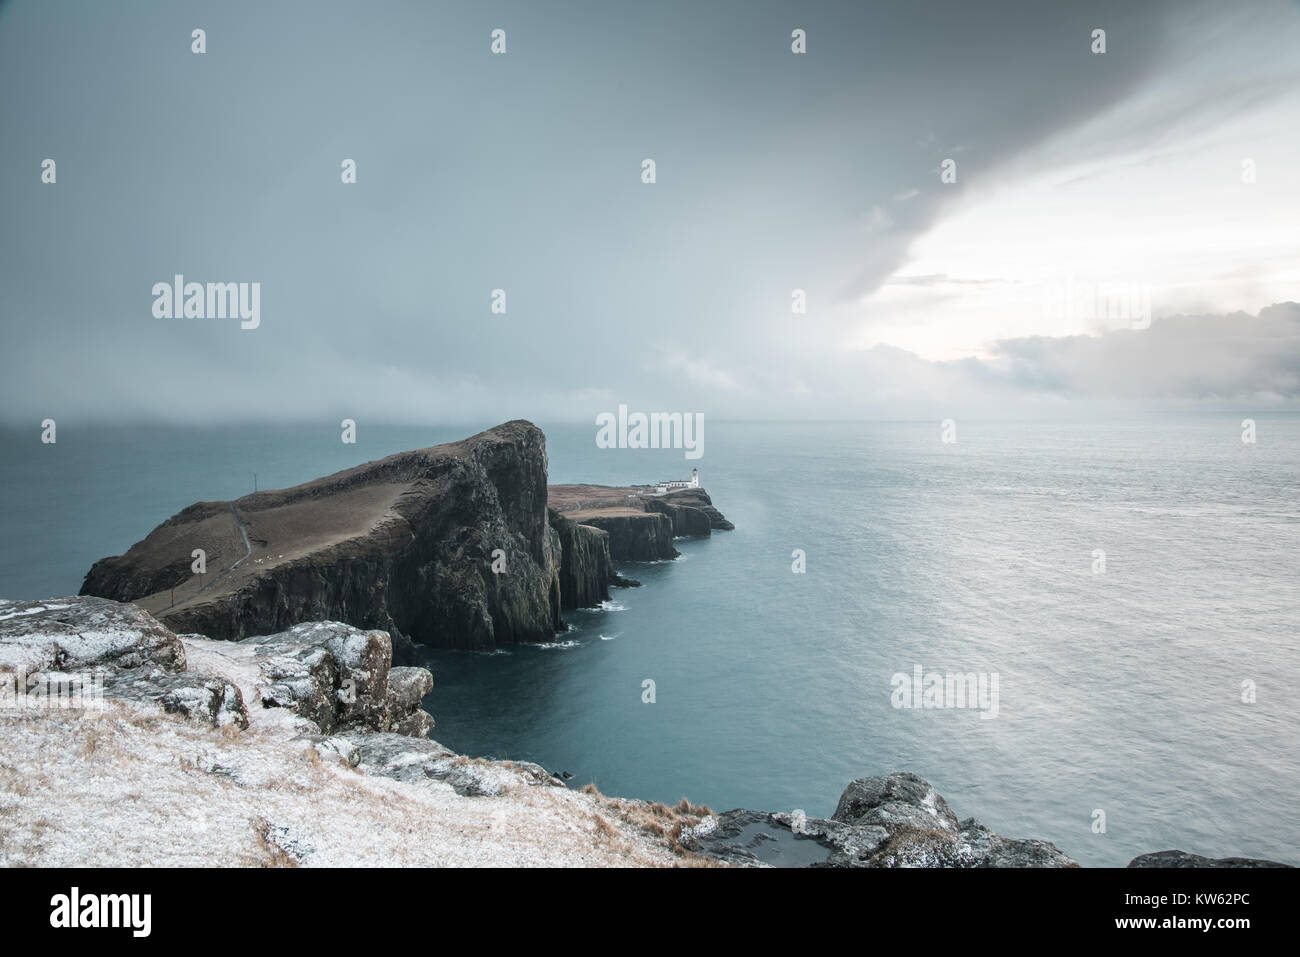 Neist Point Peninsula with White Lighthouse - Isle of Skye Landscape with Stormy Clouds on Sky, Dramatic Cliffs and Spectacular Scottish Scenery Stock Photo